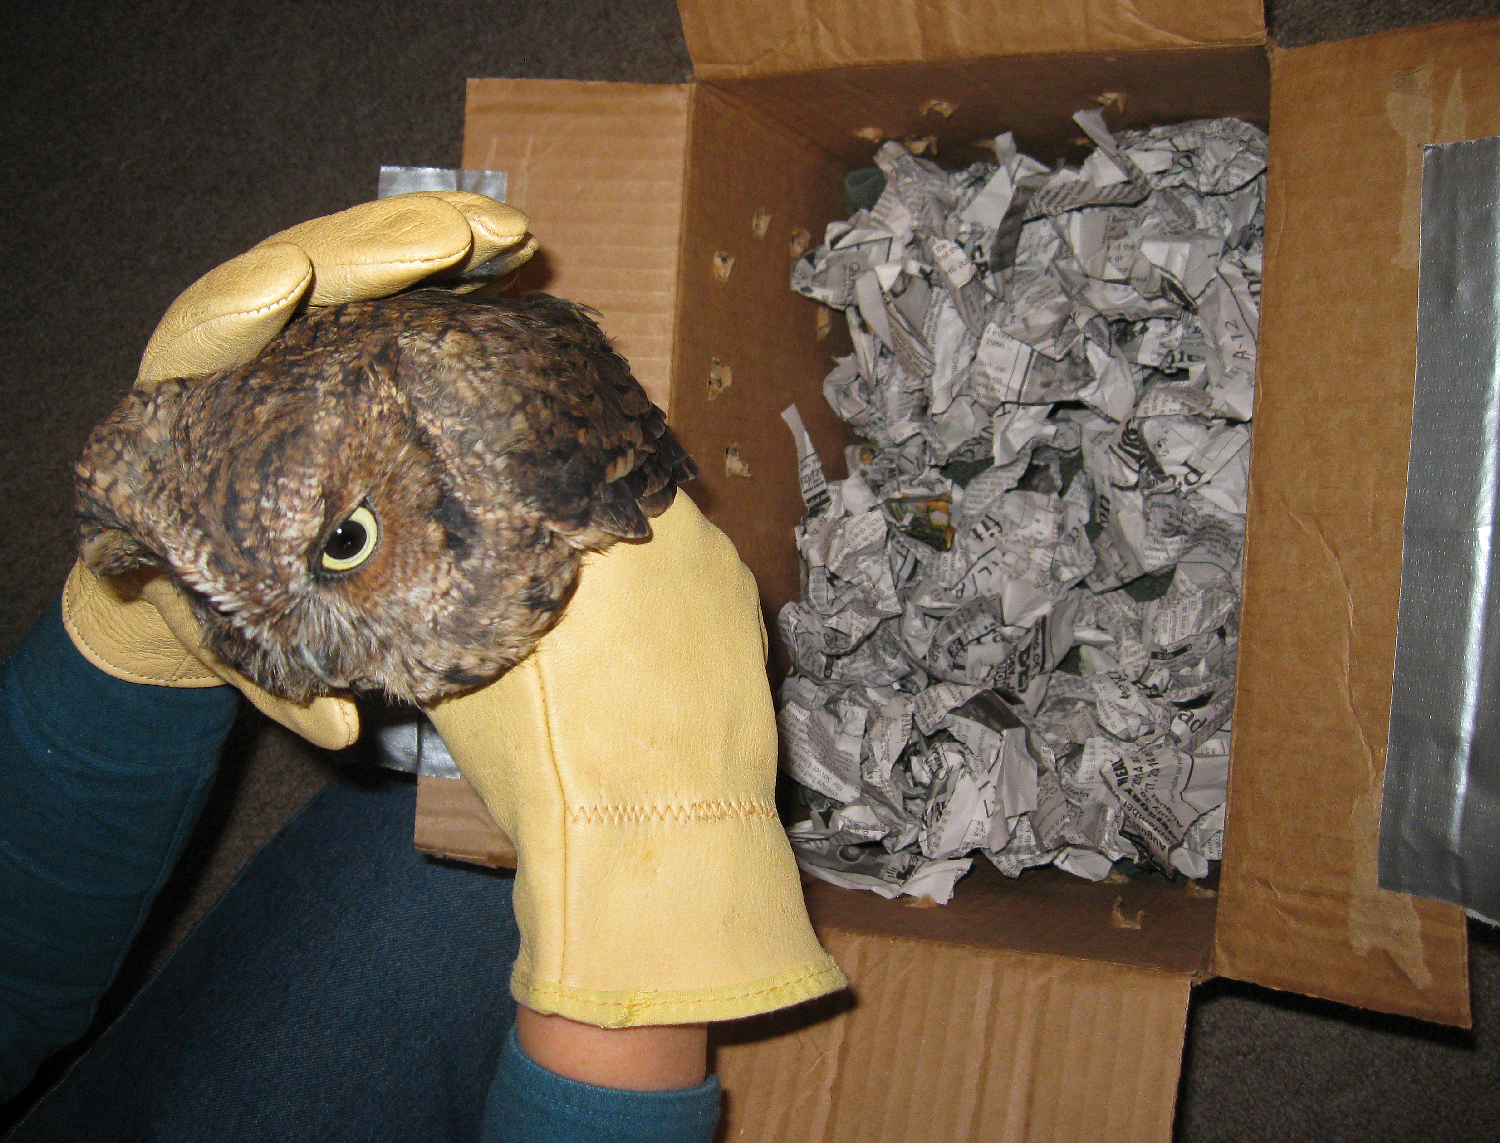 red phase screech owl  southeast alaska sitka raptor center leather gloves box ship transport shredded paper air holes